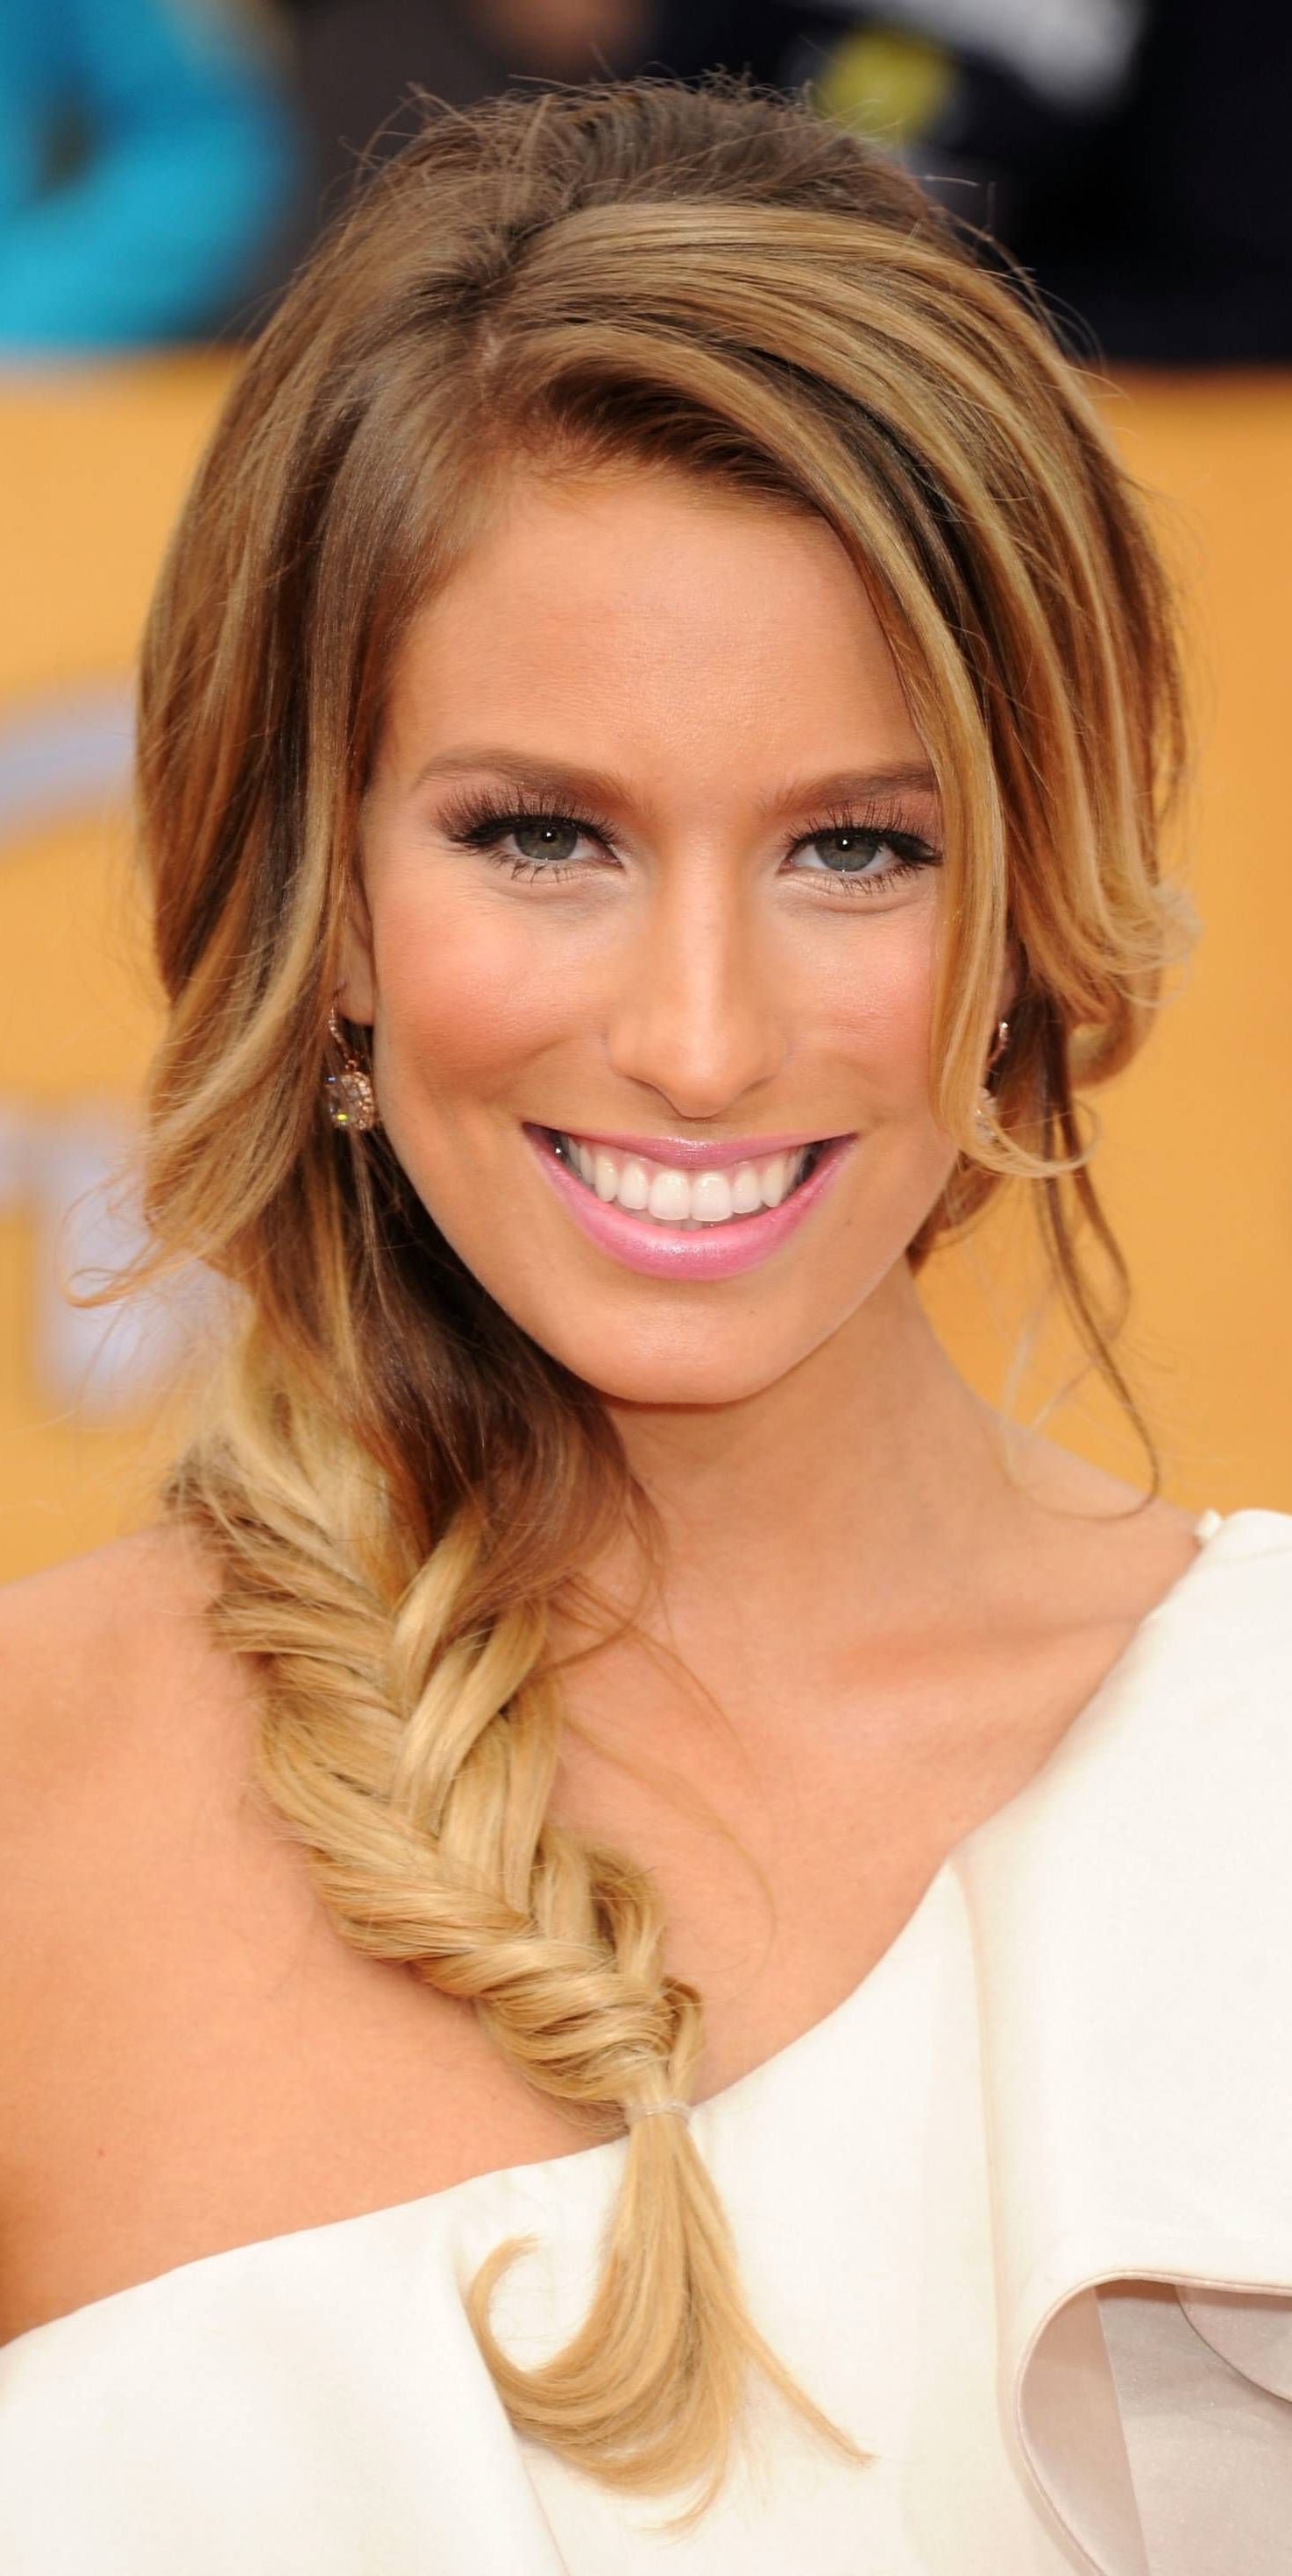 Pinterest Within Most Current Side Pony Hairstyles With Fishbraids And Long Bangs (View 4 of 20)